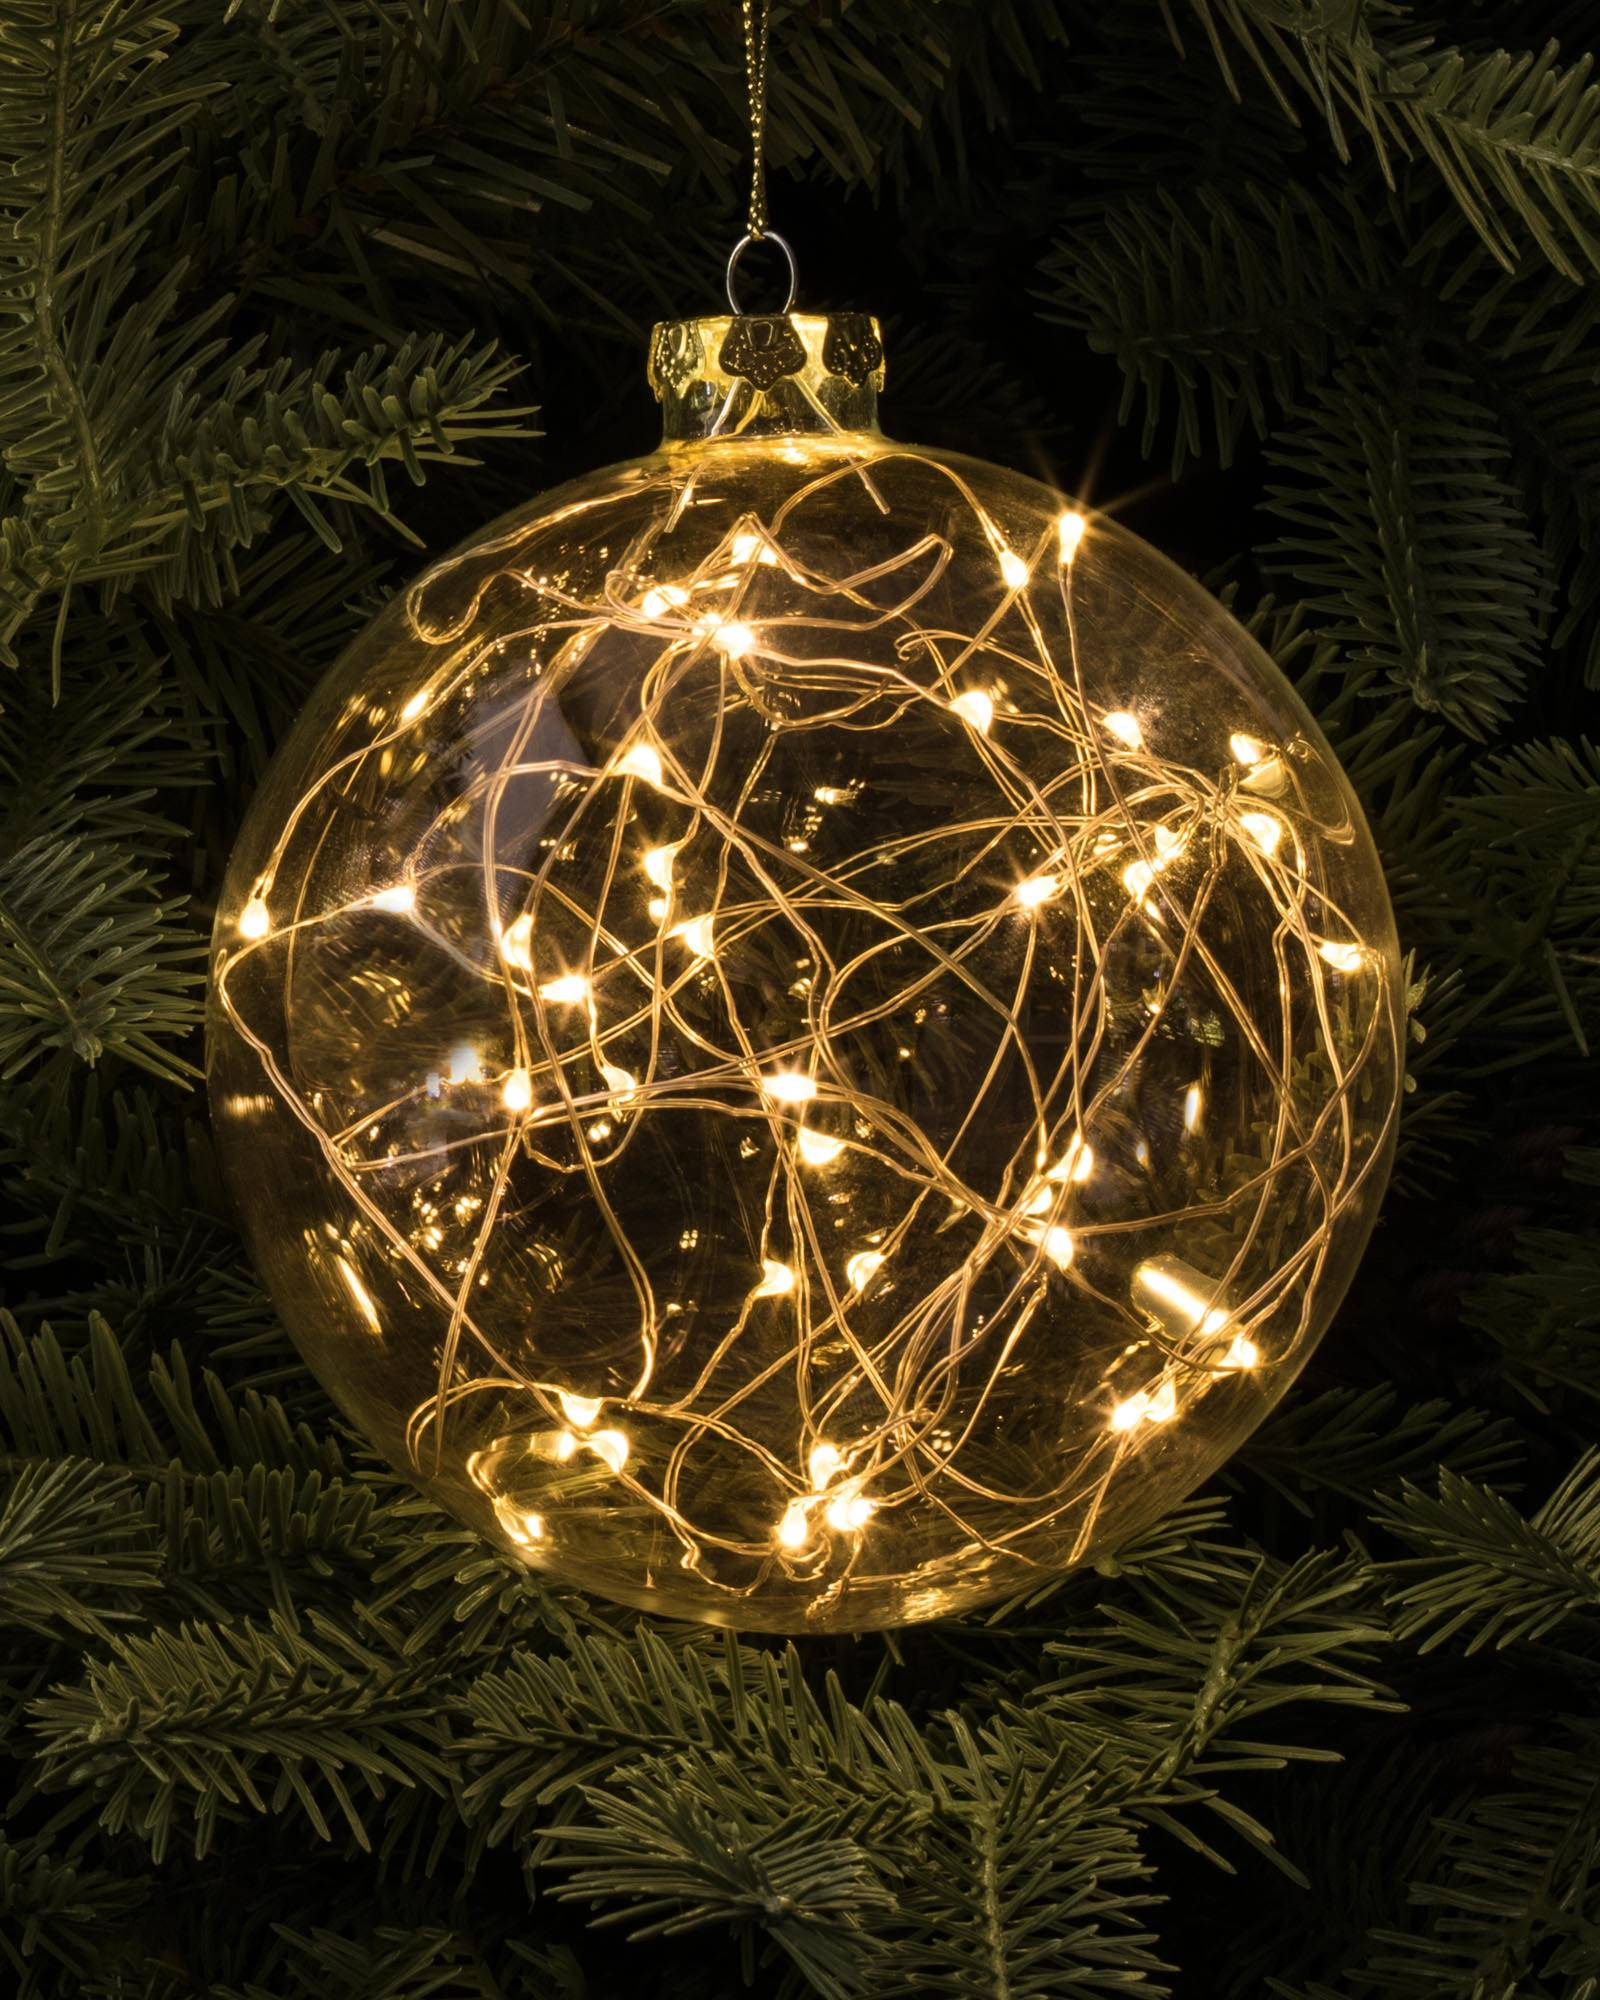 led fairy light ornaments - Christmas Decorations Led Ornaments